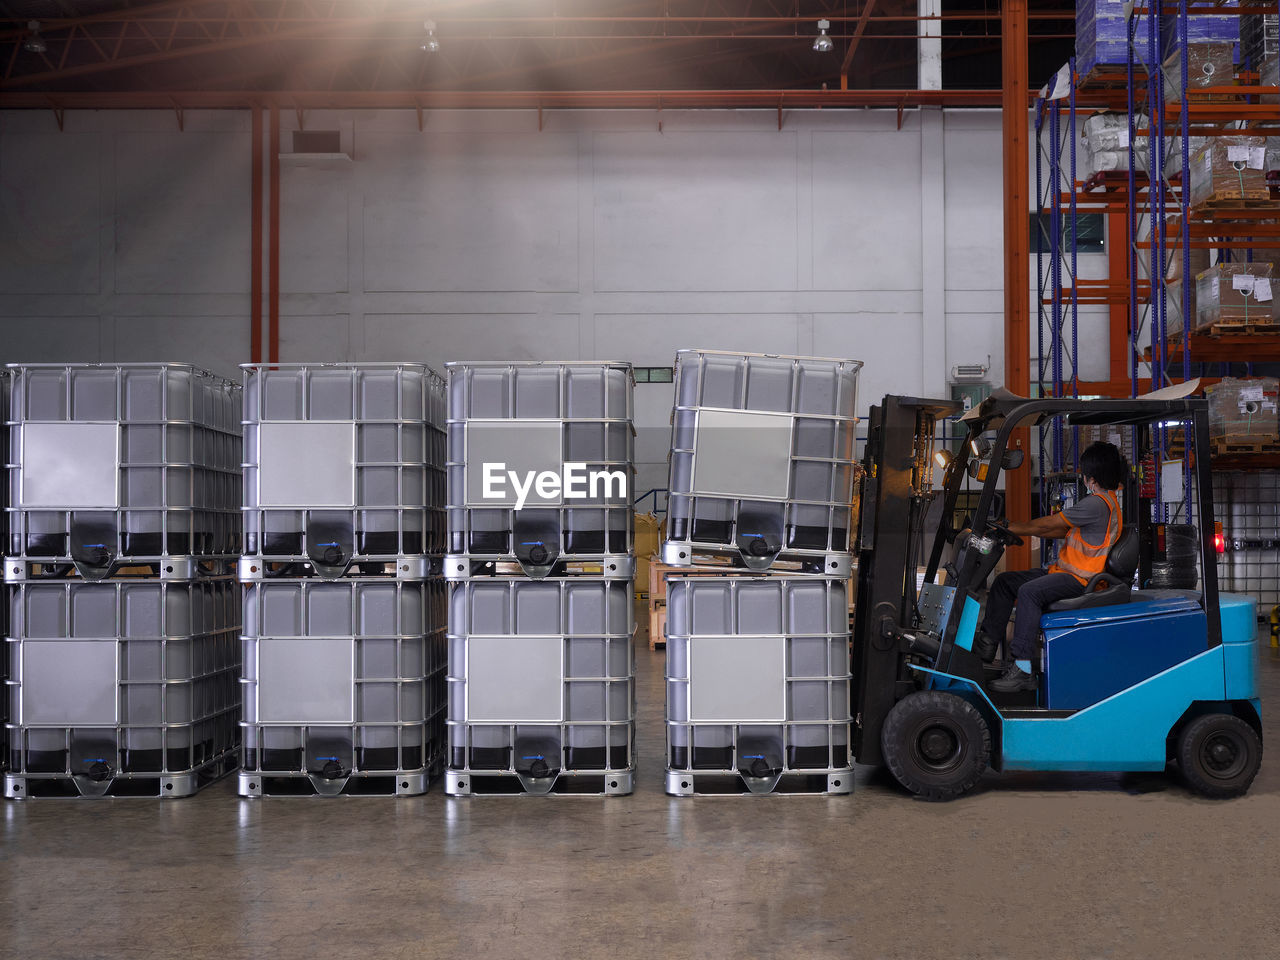 Close-up of forklift by containers